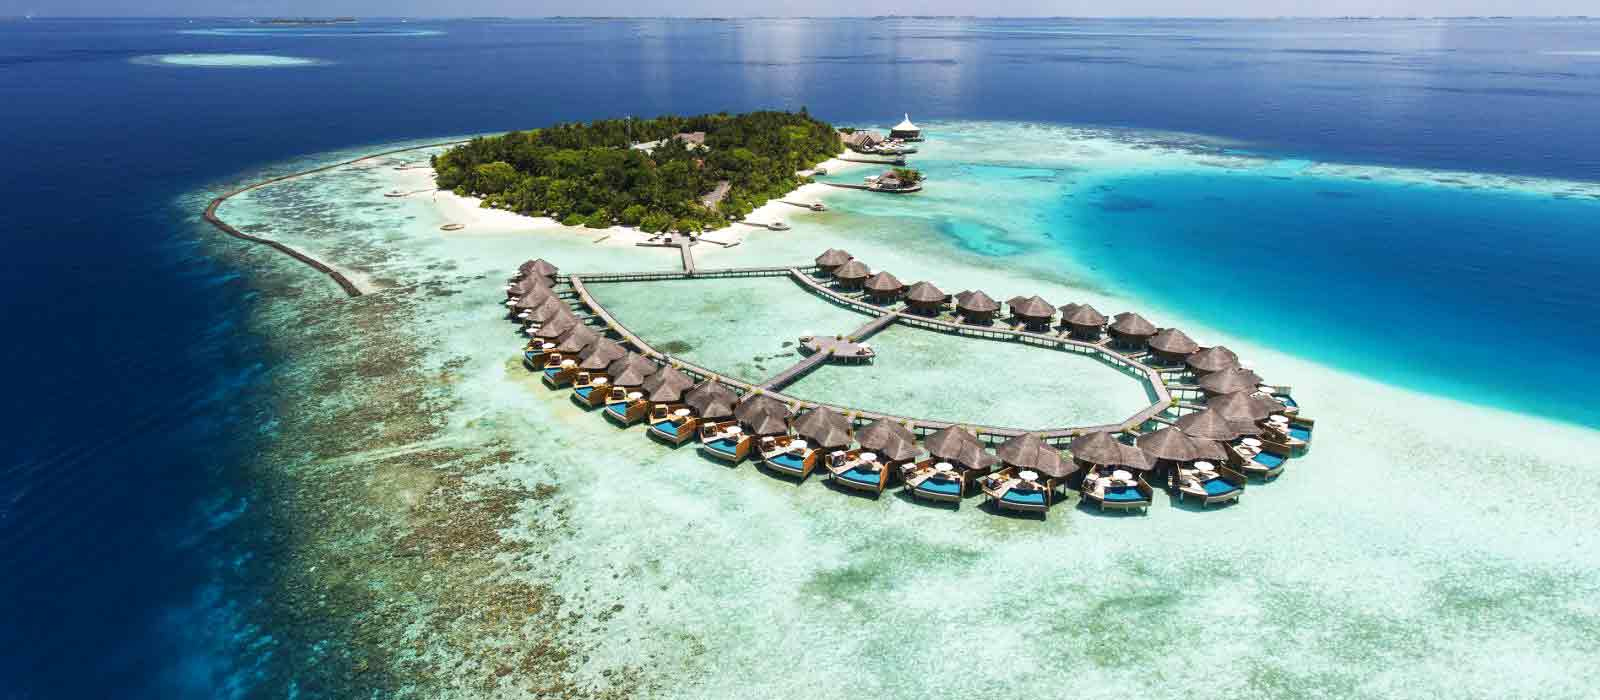 Maldives Holidays From Nepal Maldives Tour Packages From